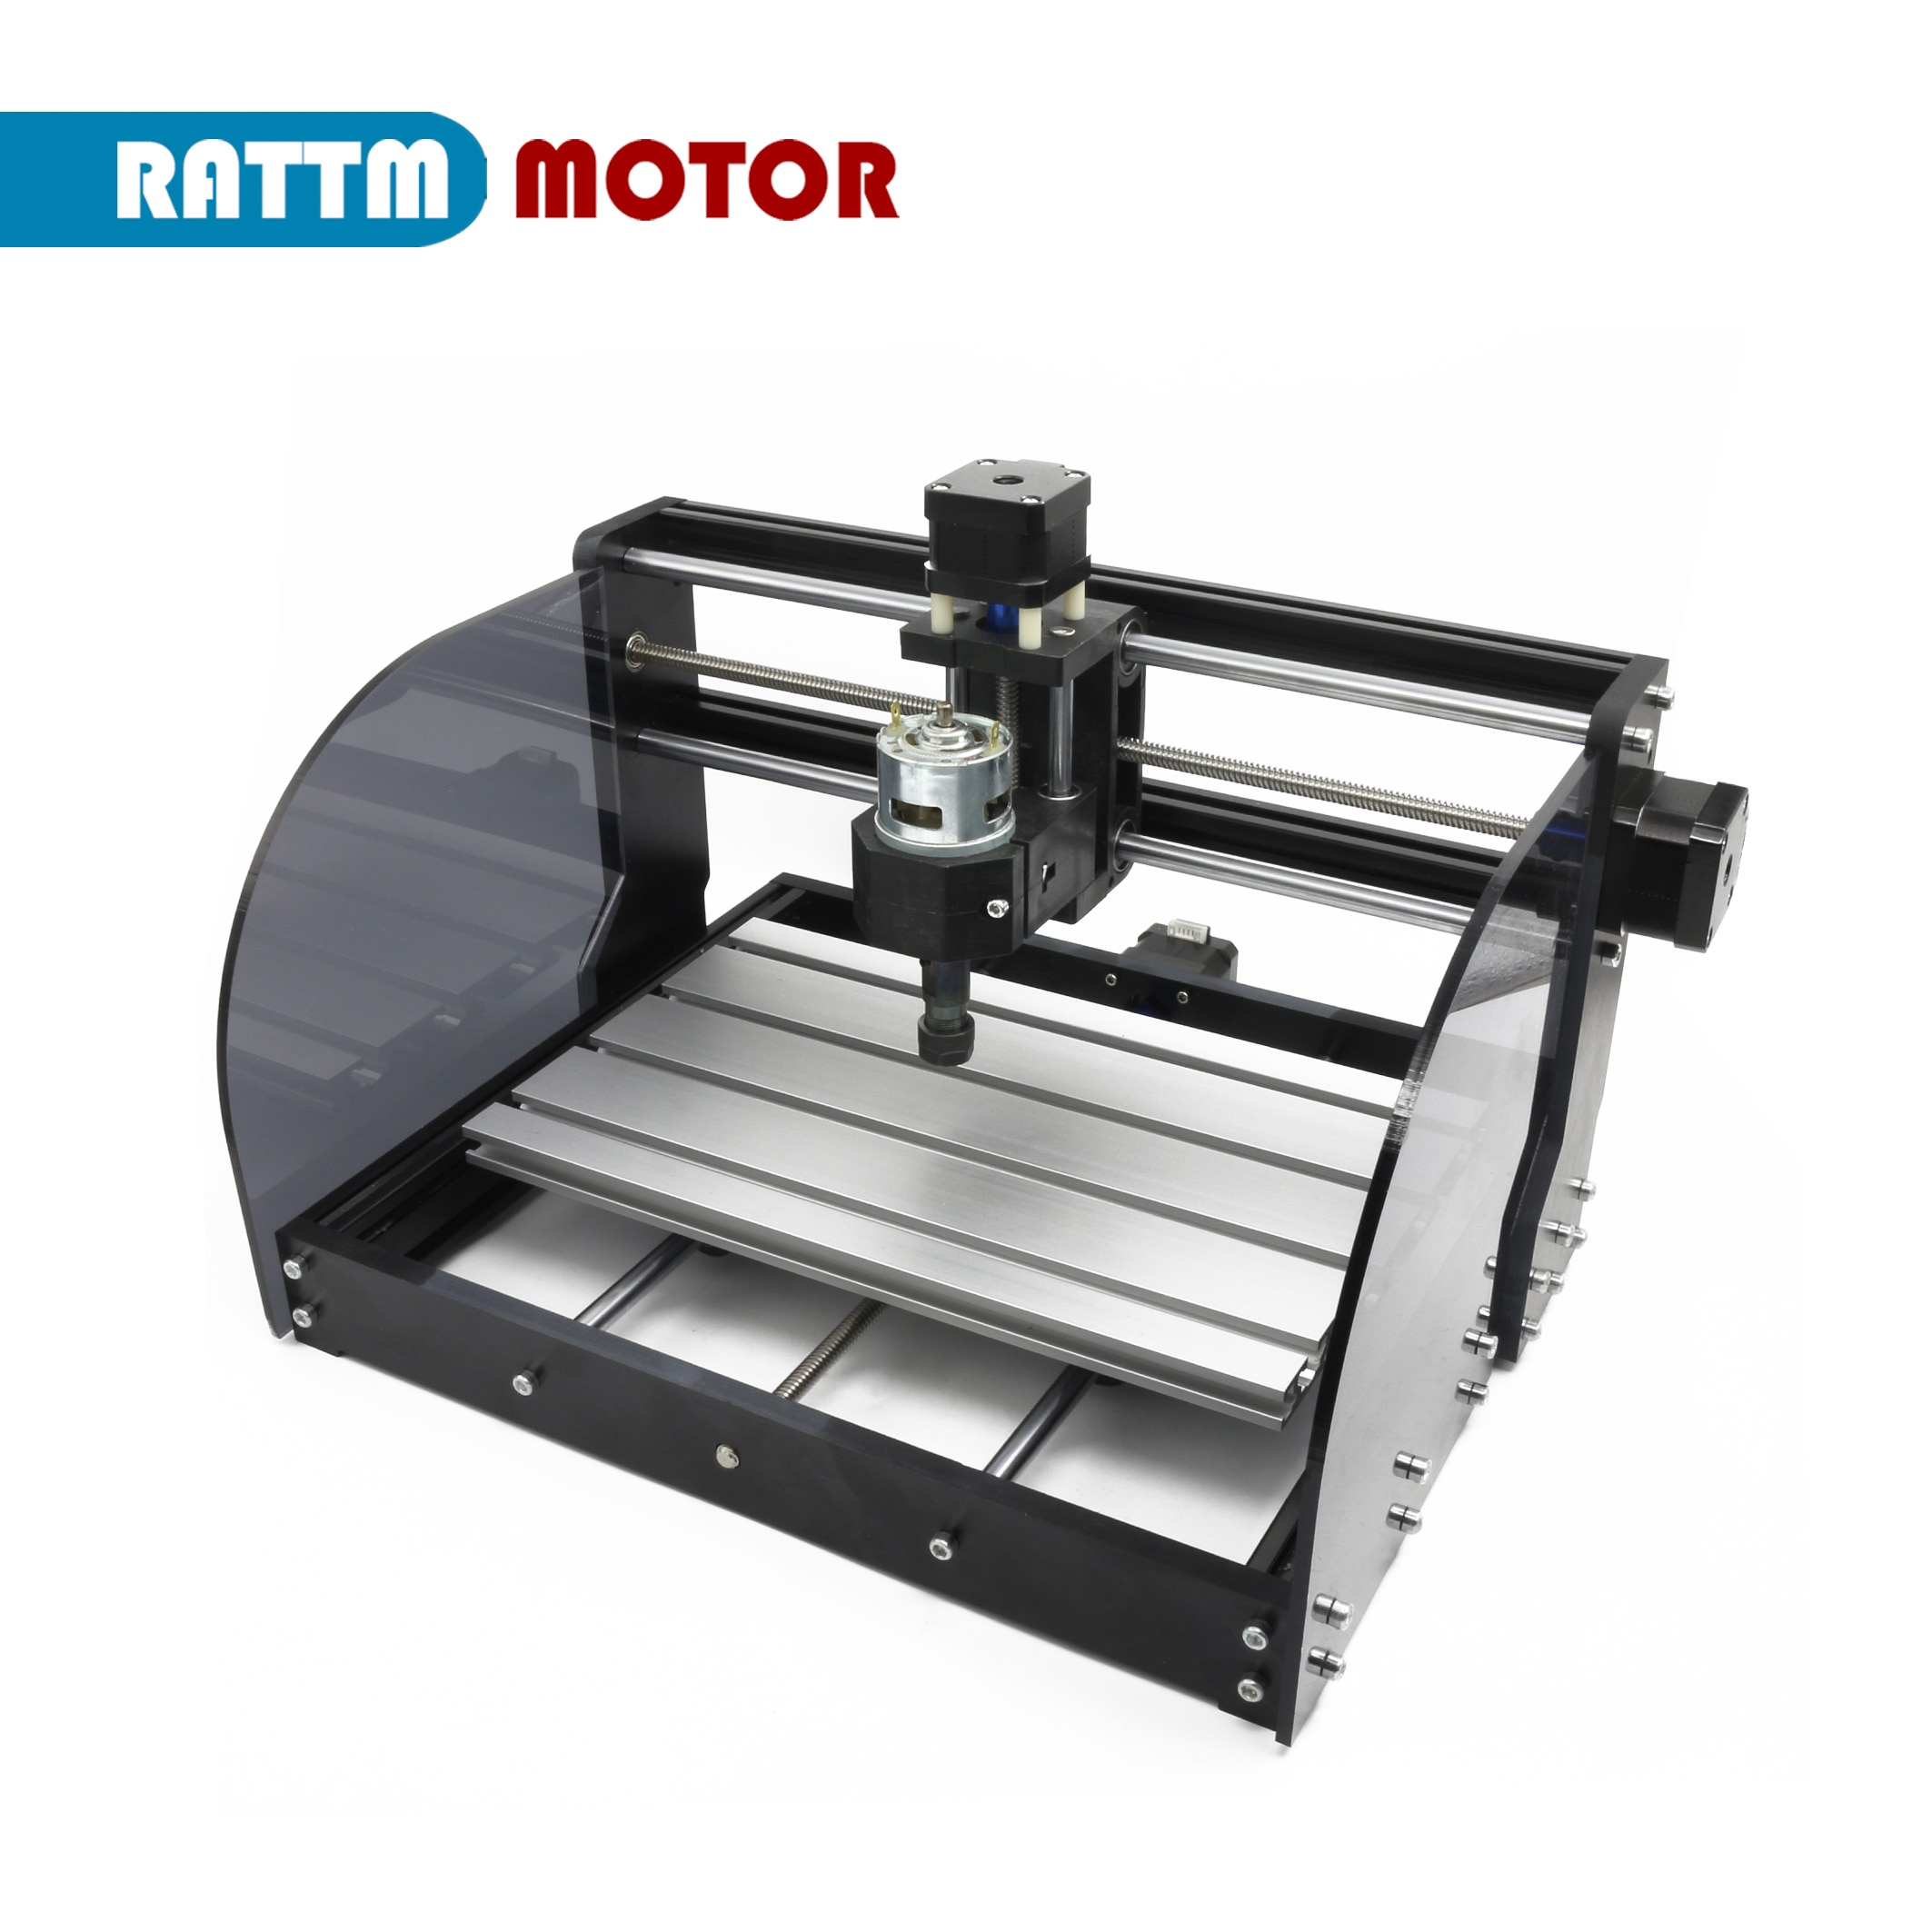 DIY user Mini CNC mill Laser engraving Machine 3 Axis 3018 Pro Max GRBL Control with ER11 collet and MPG off line Controller enlarge